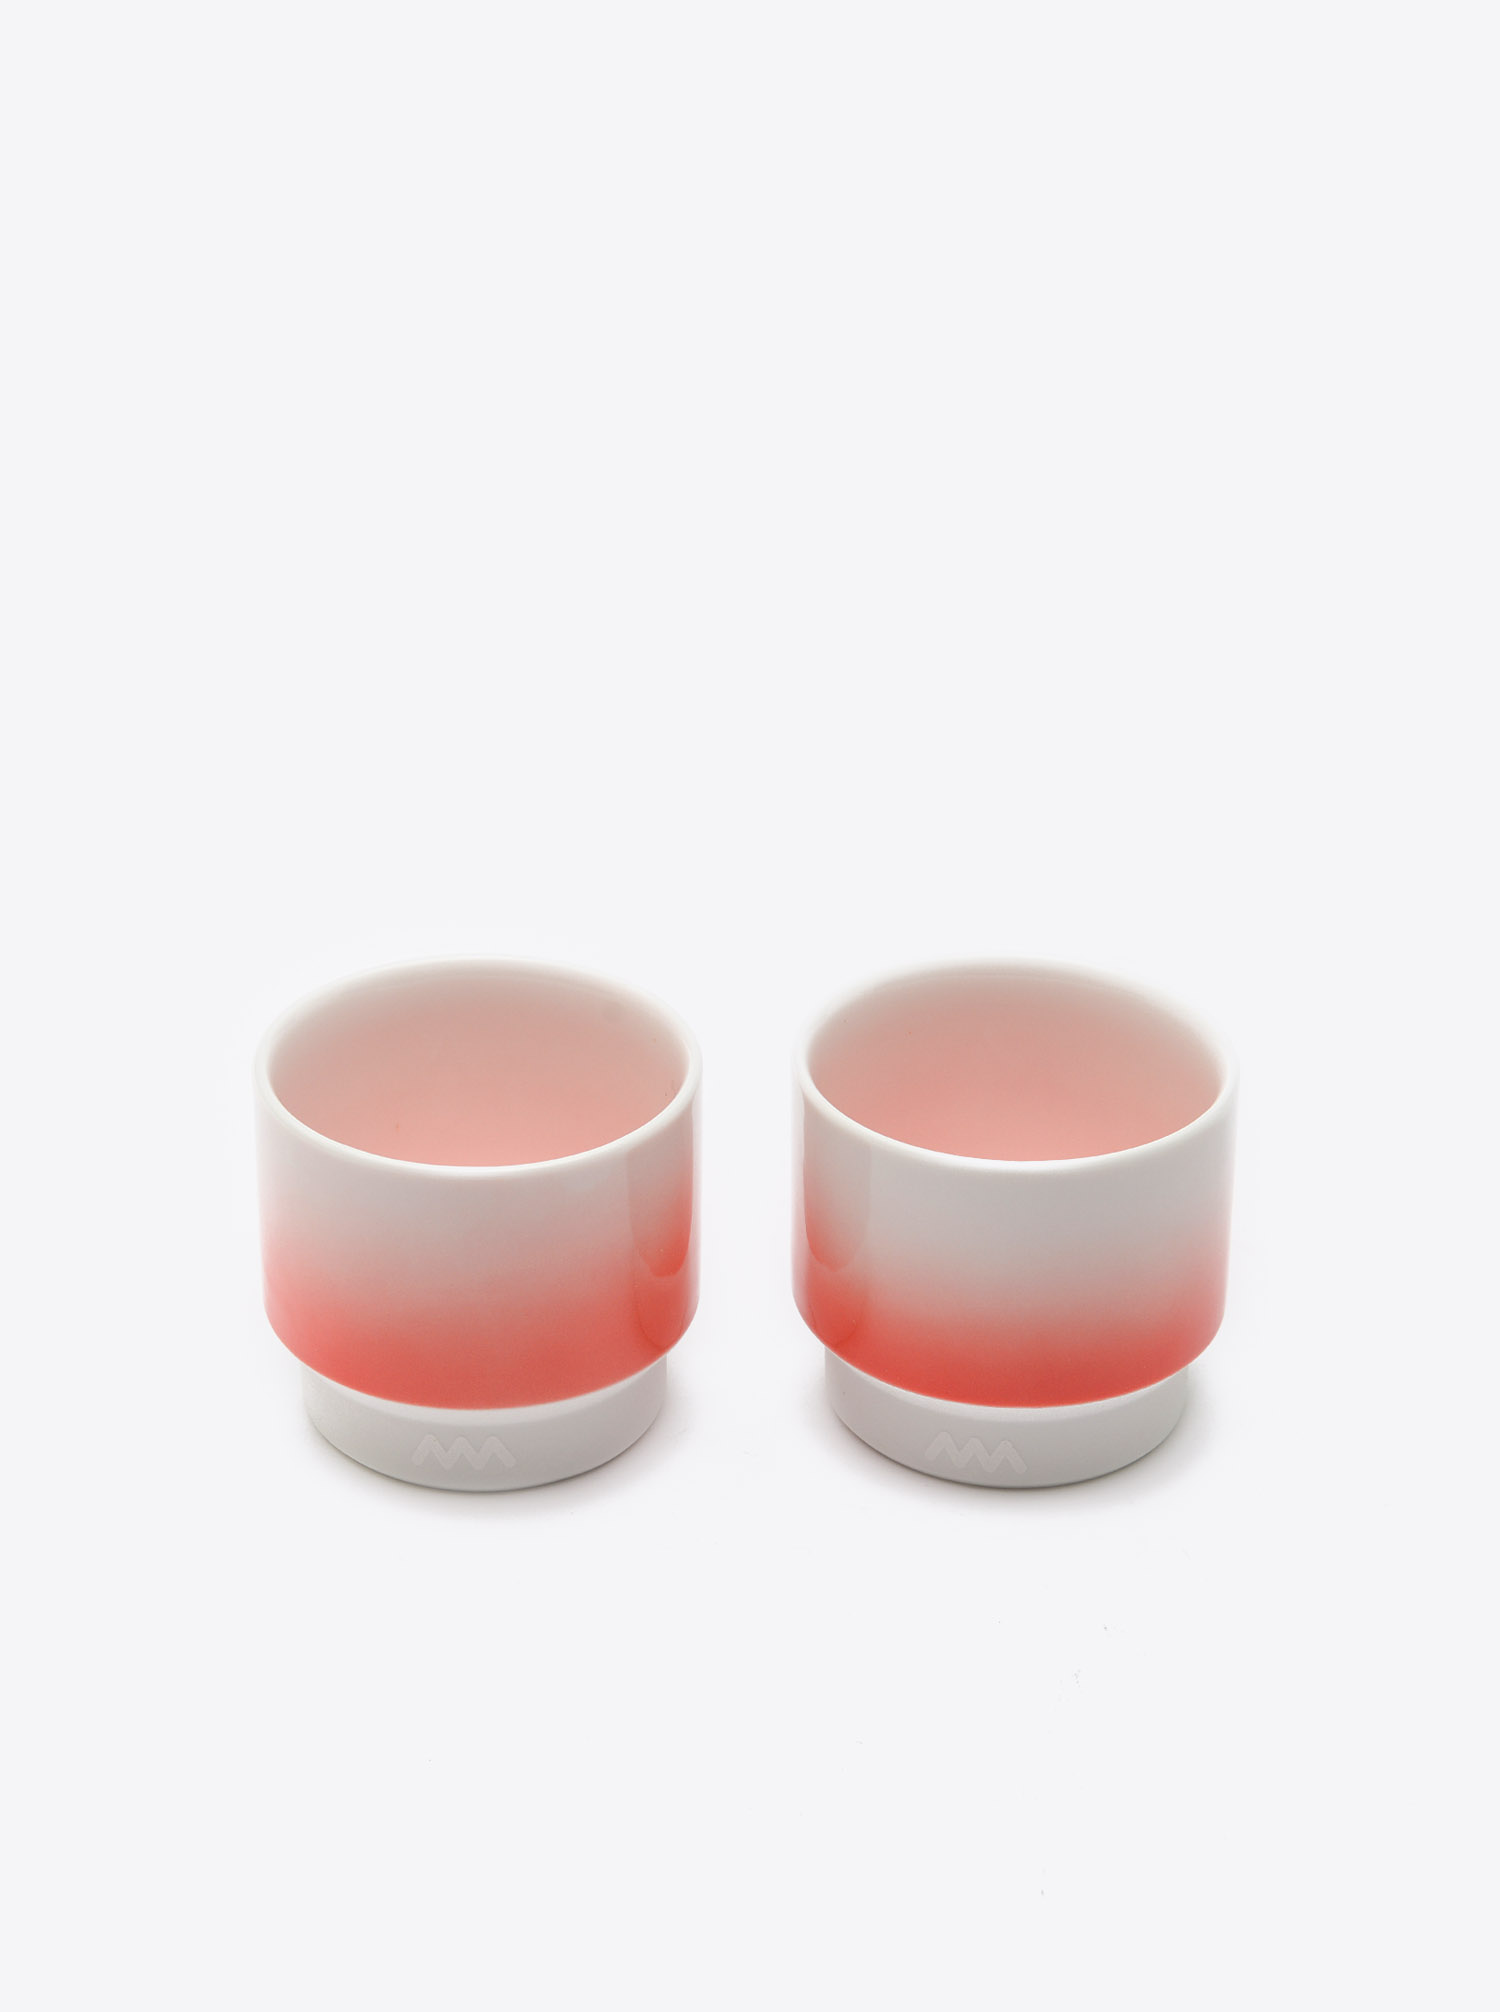 Teacup Hasami M red